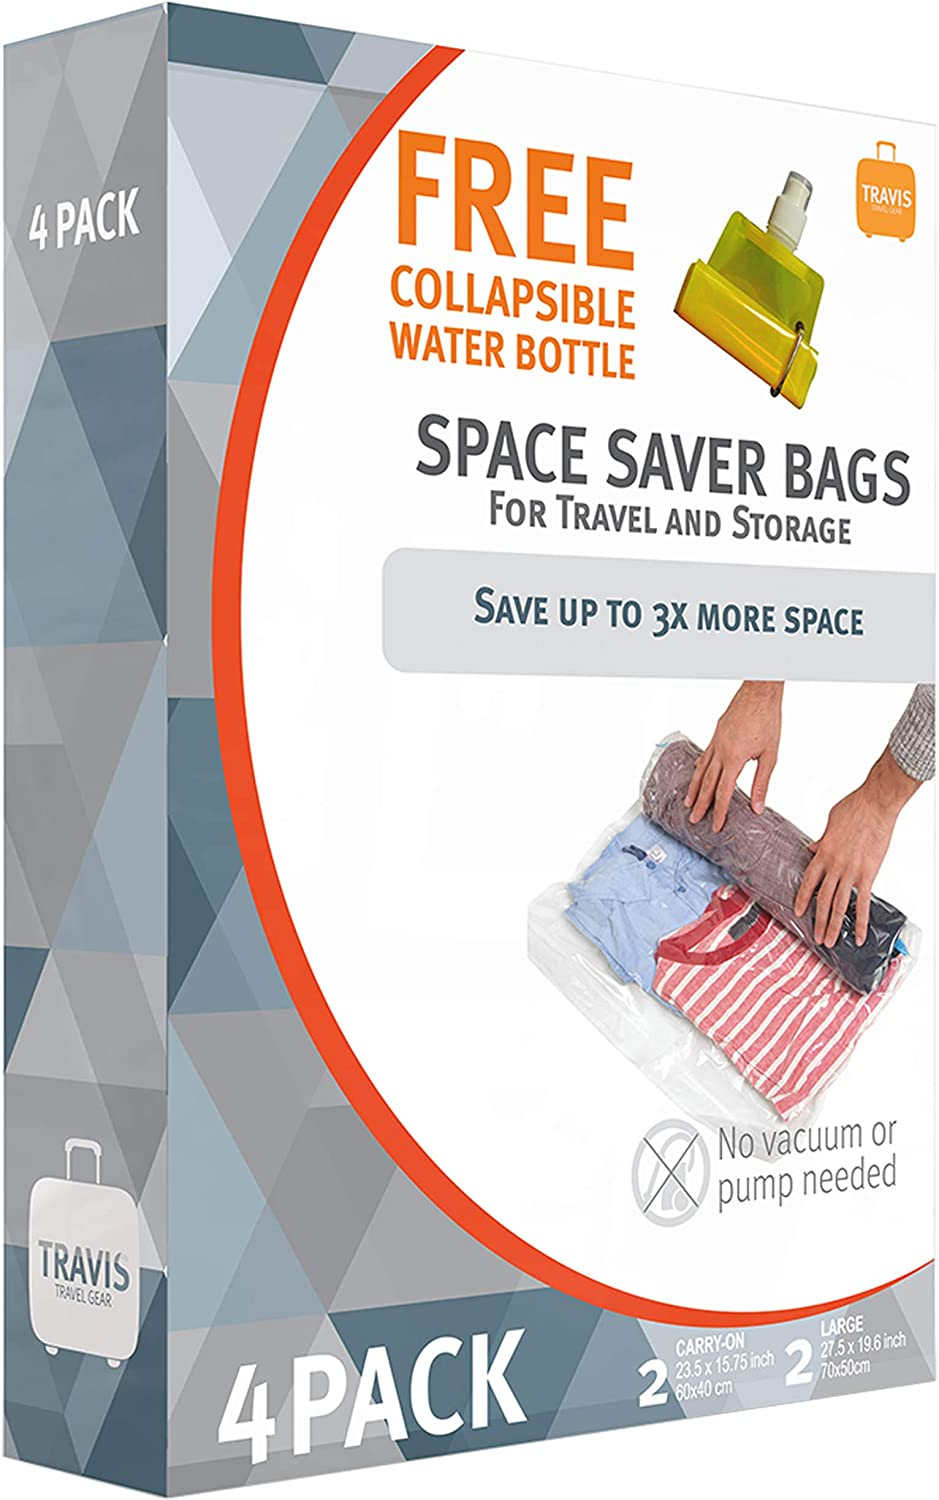 Travis Travel Gear Space Saver Bags. No Vacuum Rolling Compression, Has 4 Space Saver bags with 1 free collapsible water bottle, A total of 5 items in box